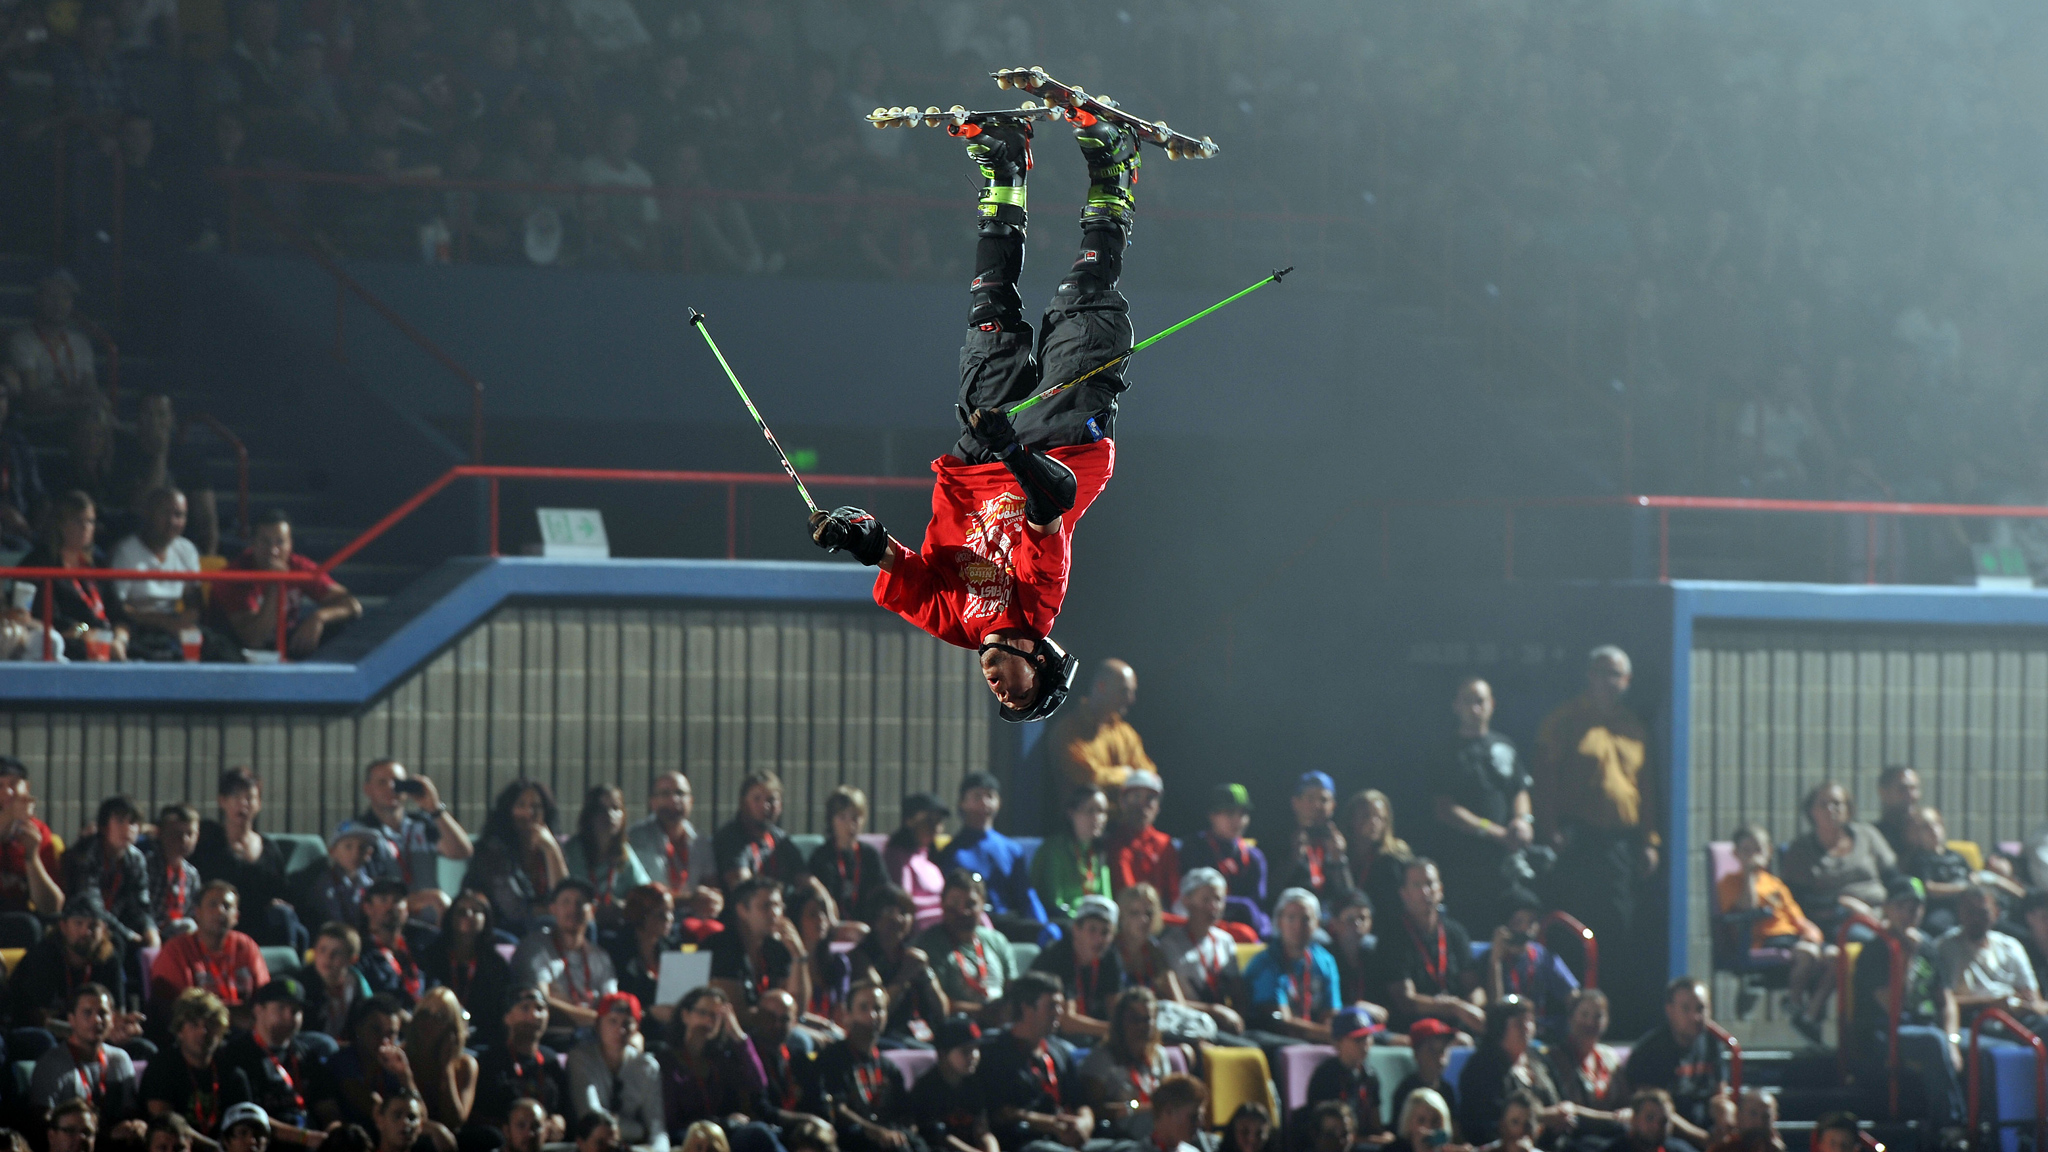 Bushfield joined Travis Pastrana's Nitro Circus Live Tour in 2012, where he performs freestyle ski stunts on roller skis.